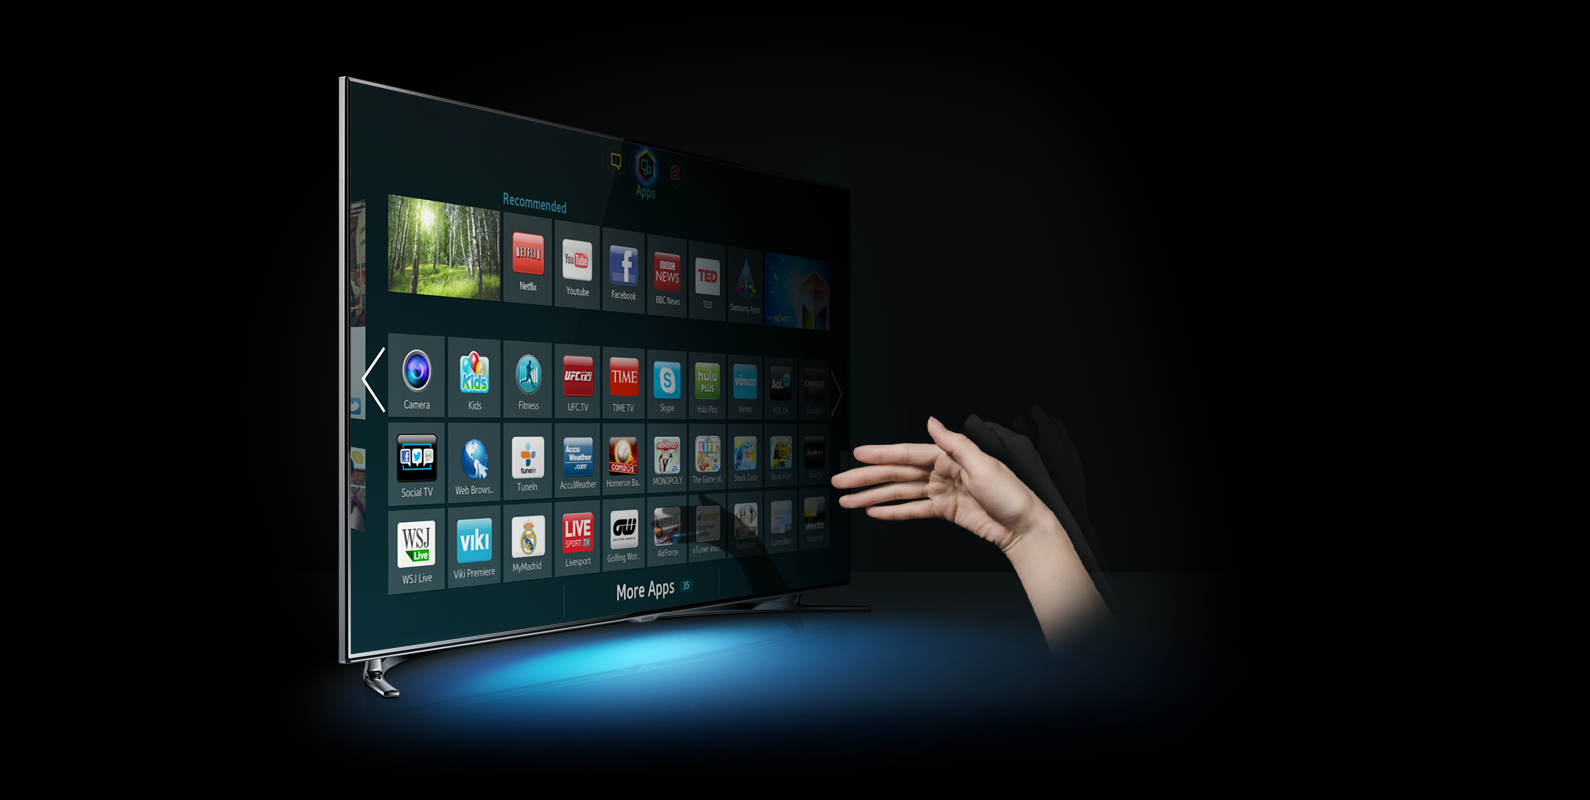 The latest operating system for Samsung Smart TV